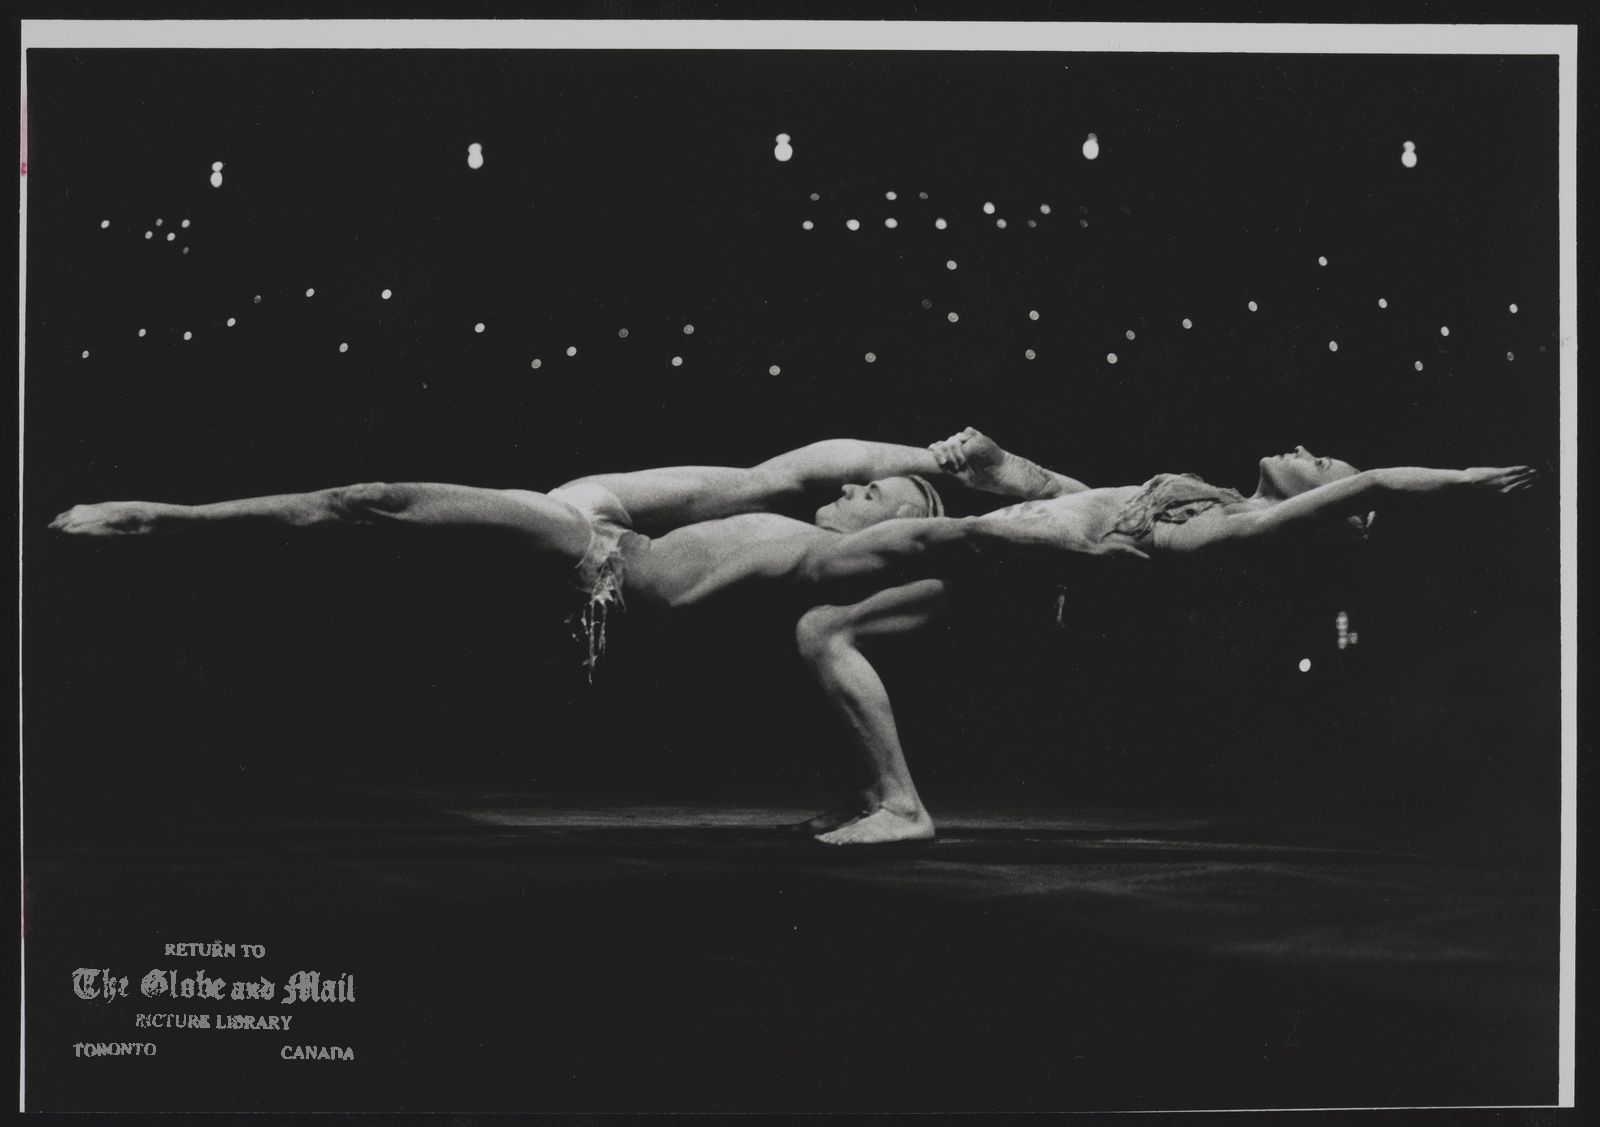 CIRQUE DE SOLEIL YVES DECOSTE AND MARIE-LAURE MESNAGE PERFORM A DECEPTIVELY SIMPLE GYMNASTIC ROUTINE IN WHICH THEY CARRY THE ENTIRE WEIGHT OF EACH OTHER ' S BODY ON SHOULDERS OR THIGHS.